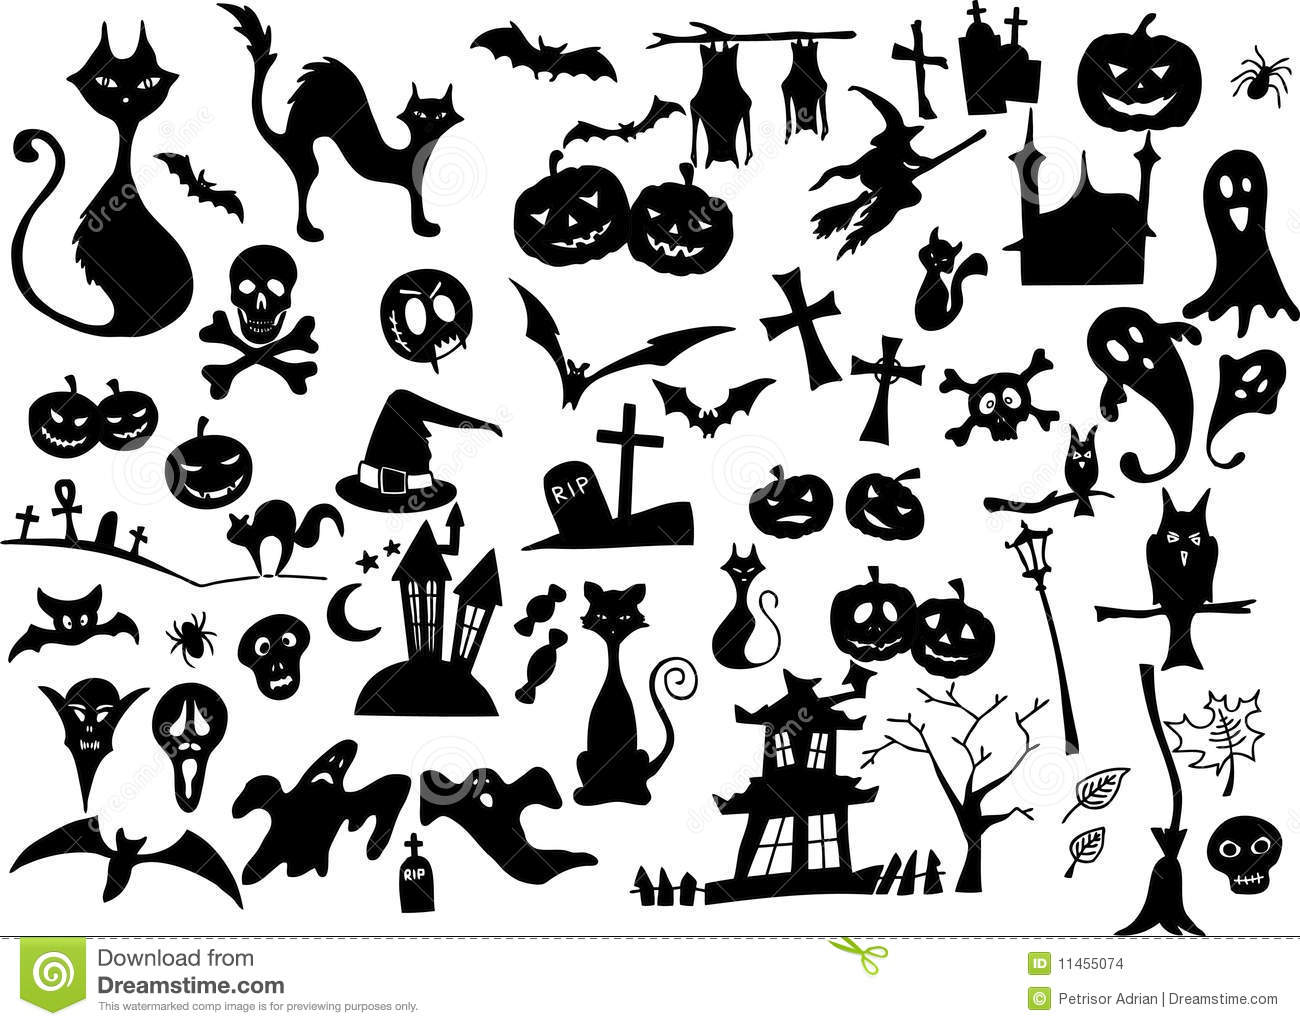 Stock Images Big Vector Collection Halloween Silhouettes Image11455074 on monster house plans designs